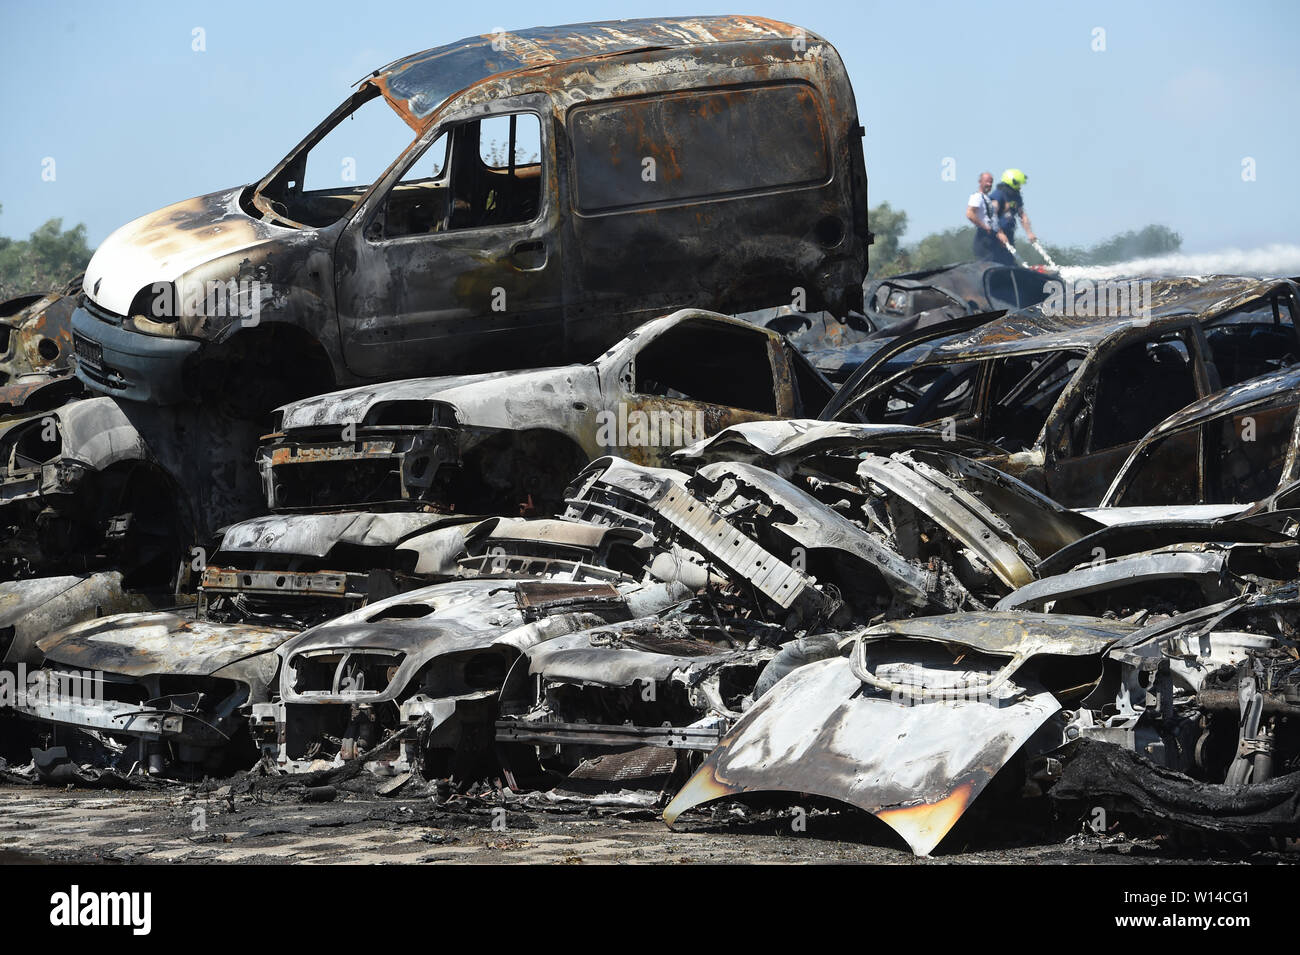 "Duvendiek, Germany. 30th June, 2019. Firefighters extinguish car wrecks after a major fire at a scrap yard near Niepars (Vorpommern-Rügen district) near Stralsund. About 500 car wrecks and tires had caught fire - how it came to the fire was still unclear, as the police reported. (to dpa ""About 500 burning car wrecks - cloud of smoke visible for miles"") Credit: Stefan Sauer/dpa-Zentralbild/dpa/Alamy Live News Stock Photo"